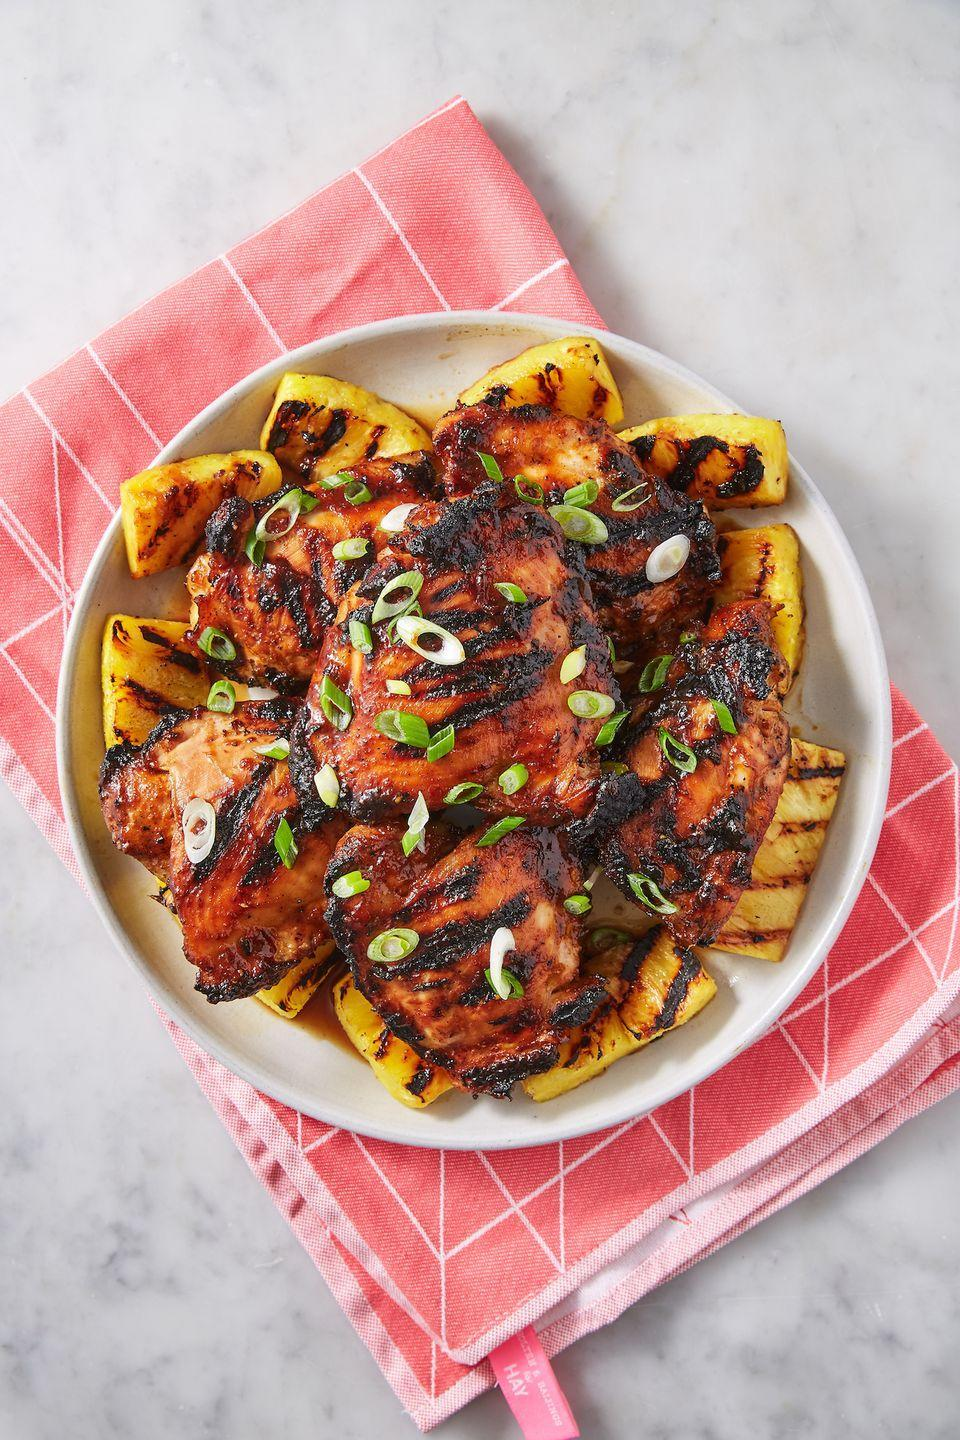 """<p>The grilled pineapple is the perfect addition. </p><p>Get the recipe from <a href=""""https://www.delish.com/cooking/recipe-ideas/a27972975/huli-huli-chicken-recipe/"""" rel=""""nofollow noopener"""" target=""""_blank"""" data-ylk=""""slk:Delish"""" class=""""link rapid-noclick-resp"""">Delish</a>.</p>"""